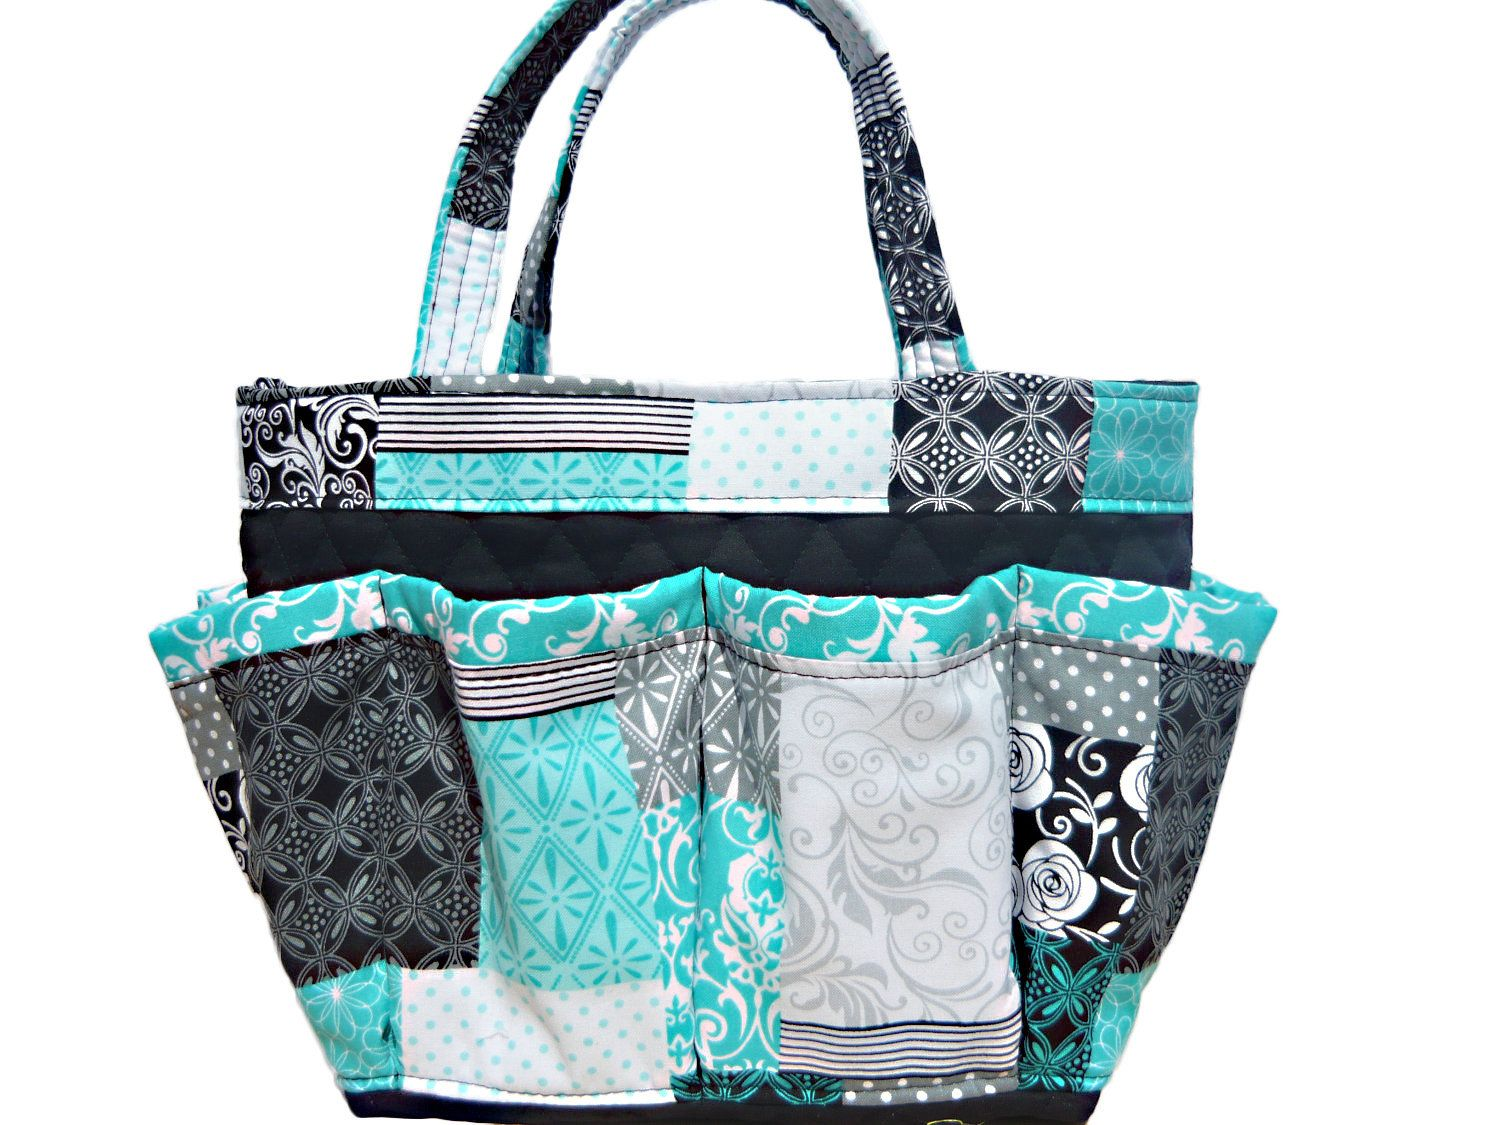 free bingo tote bag patterns to sew - Yahoo Image Search Results ...